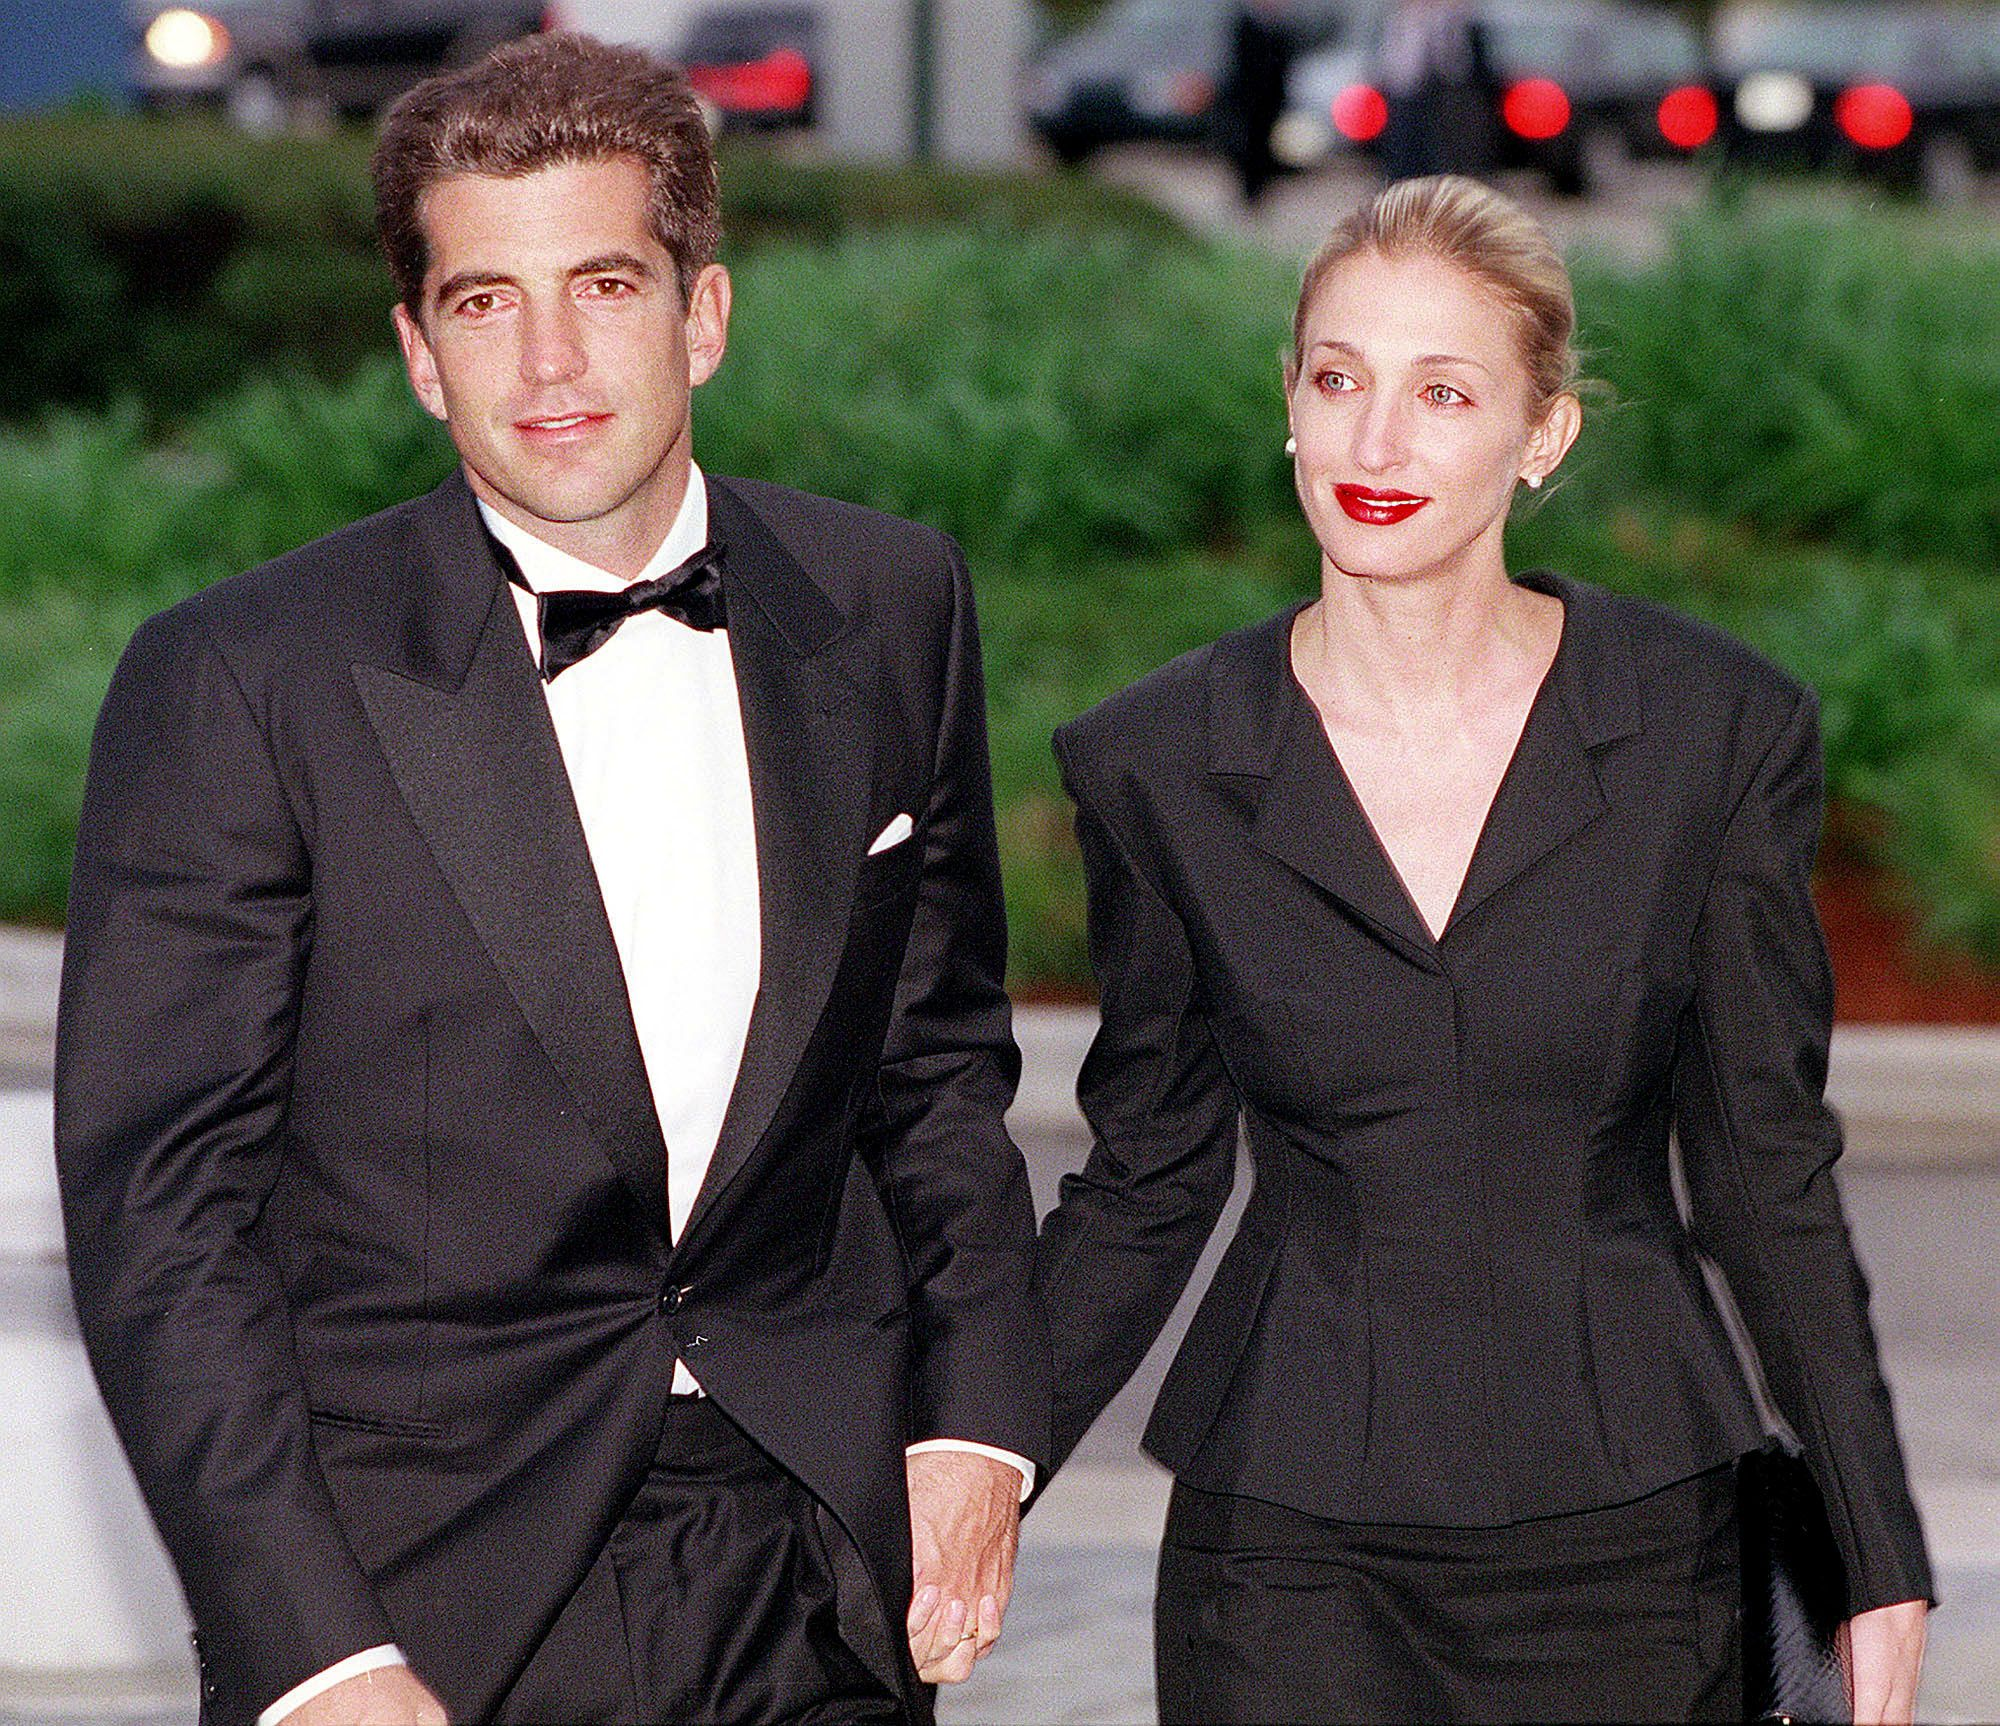 John F. Kennedy, Jr. and his wife Carolyn Bessette Kennedy at the annual John F. Kennedy Library Foundation dinner and Profiles in Courage awards in honor of the former President's 82nd Birthday, Sunday, May 23, 1999 | Photo: Getty Images